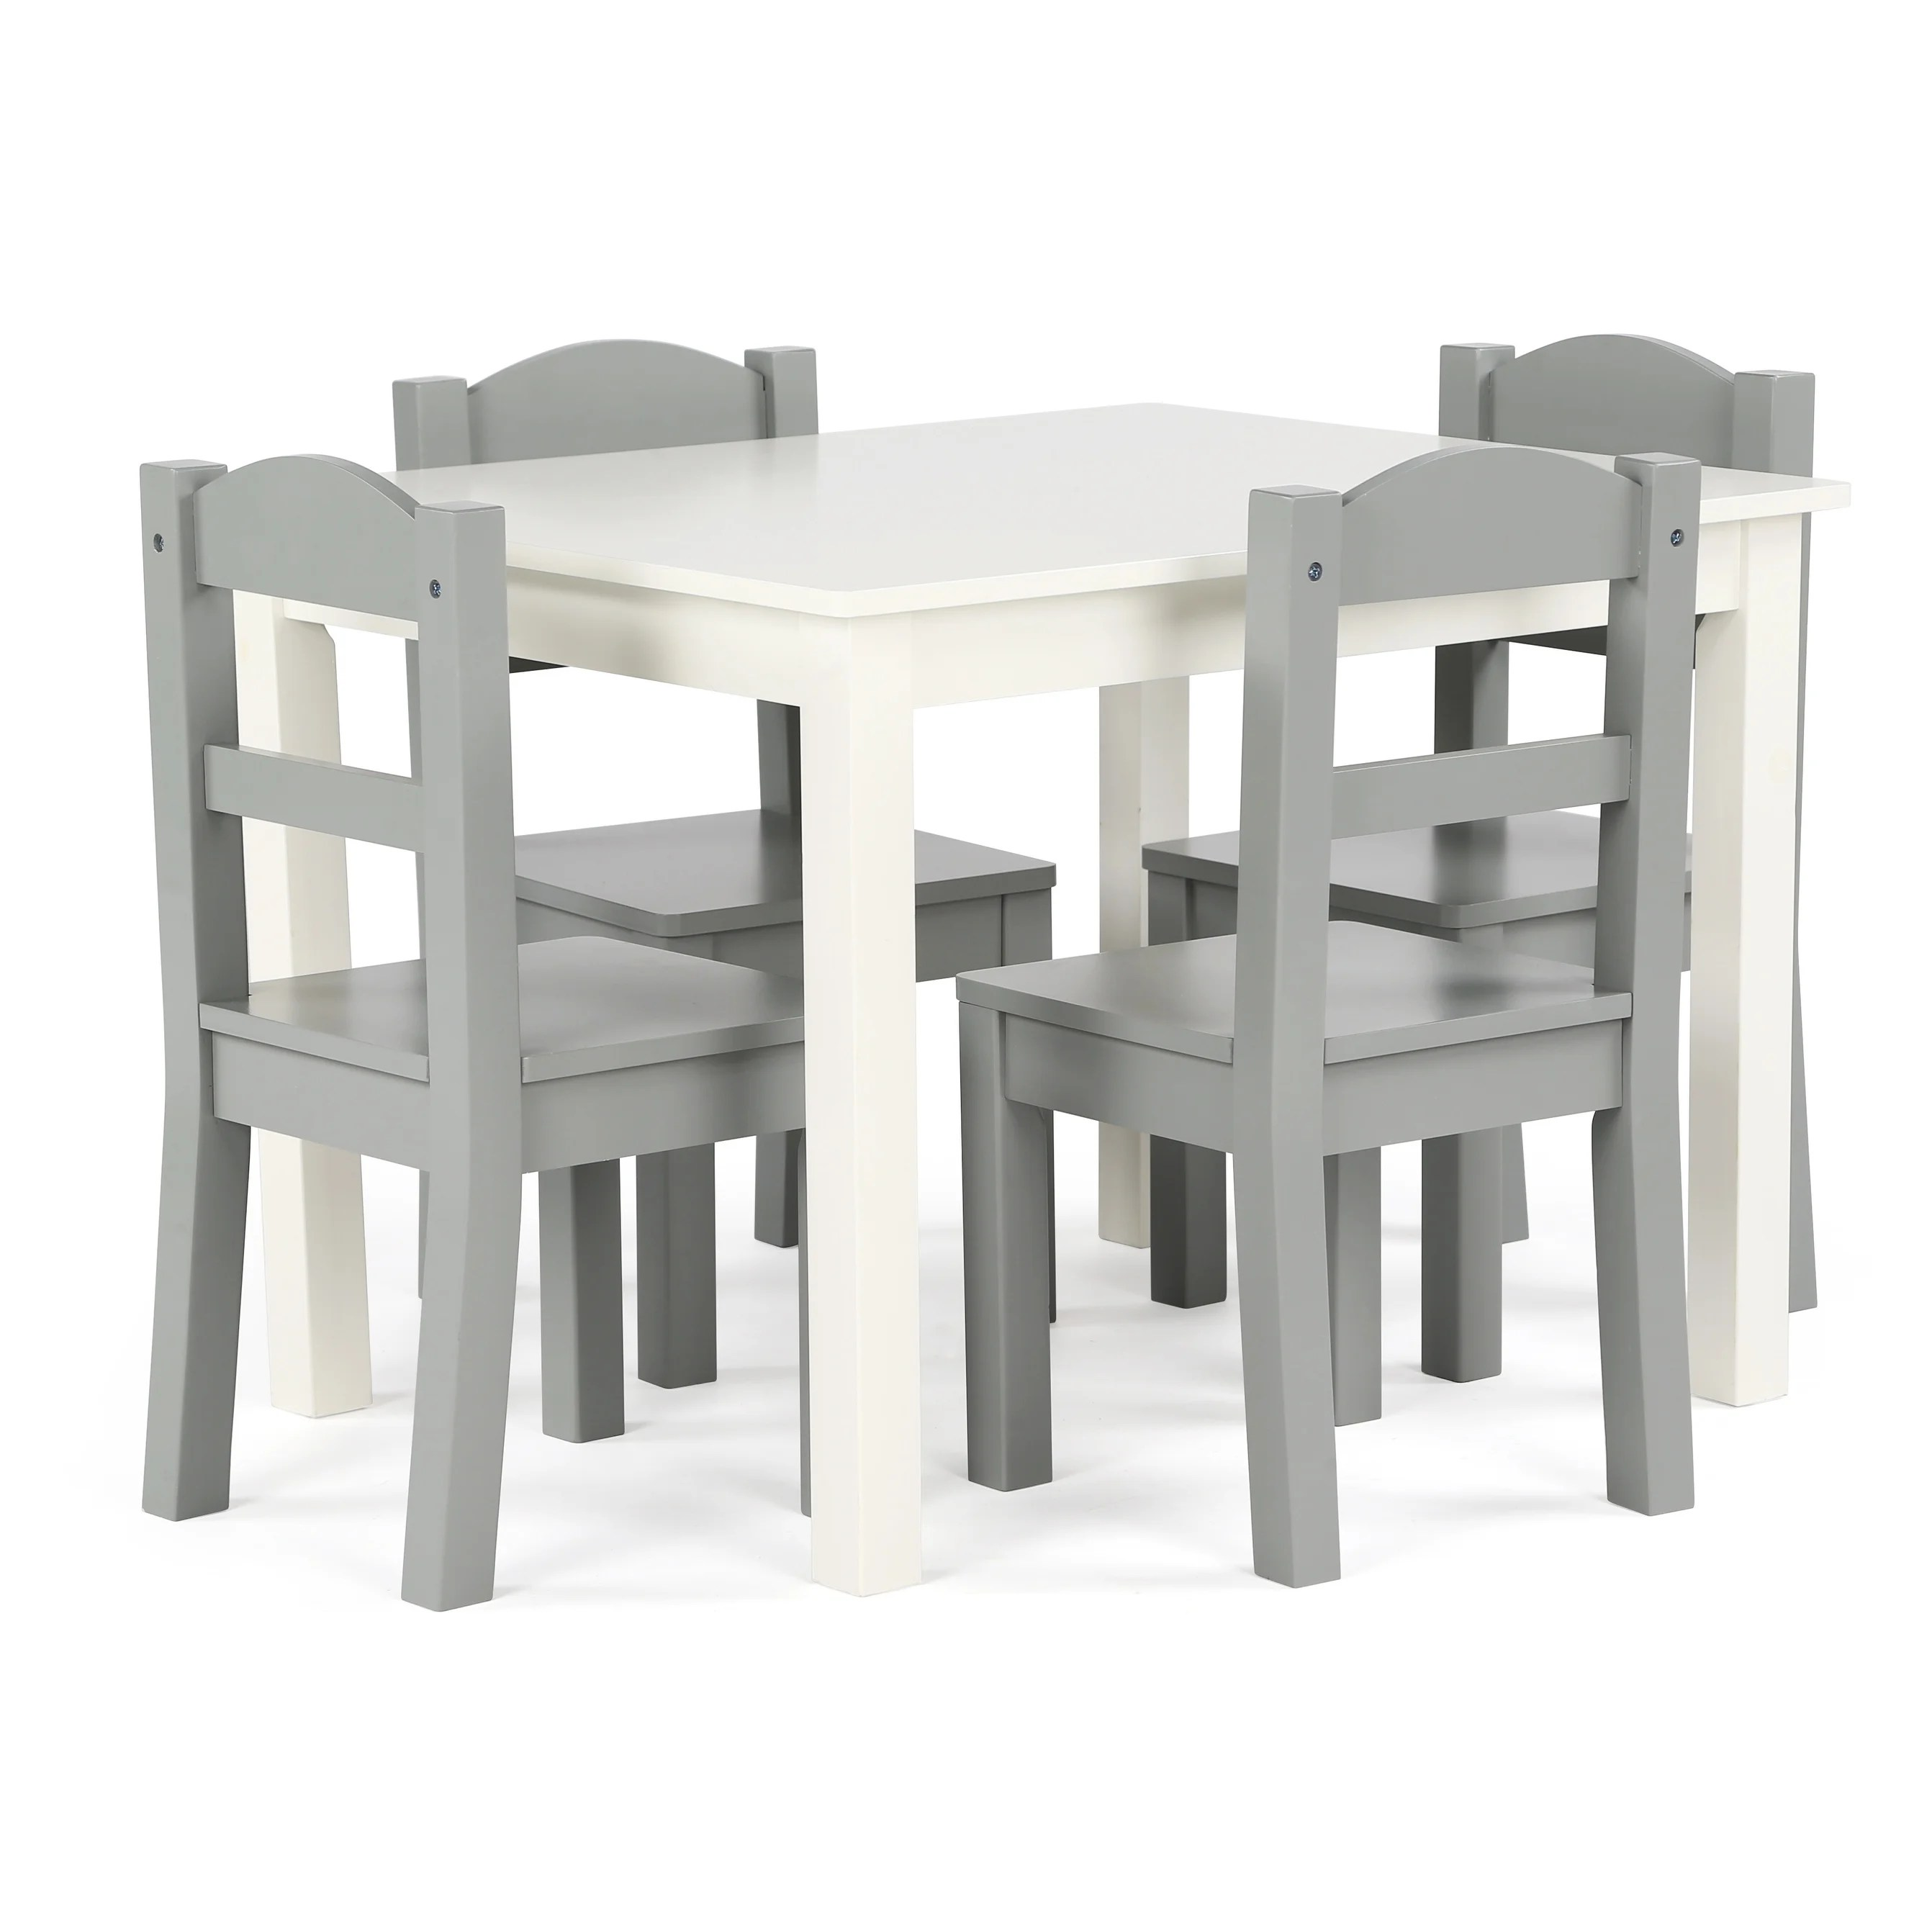 kids table with chairs wilson fisher resin wicker reclining patio chair shop springfield 5 piece wood set in white grey